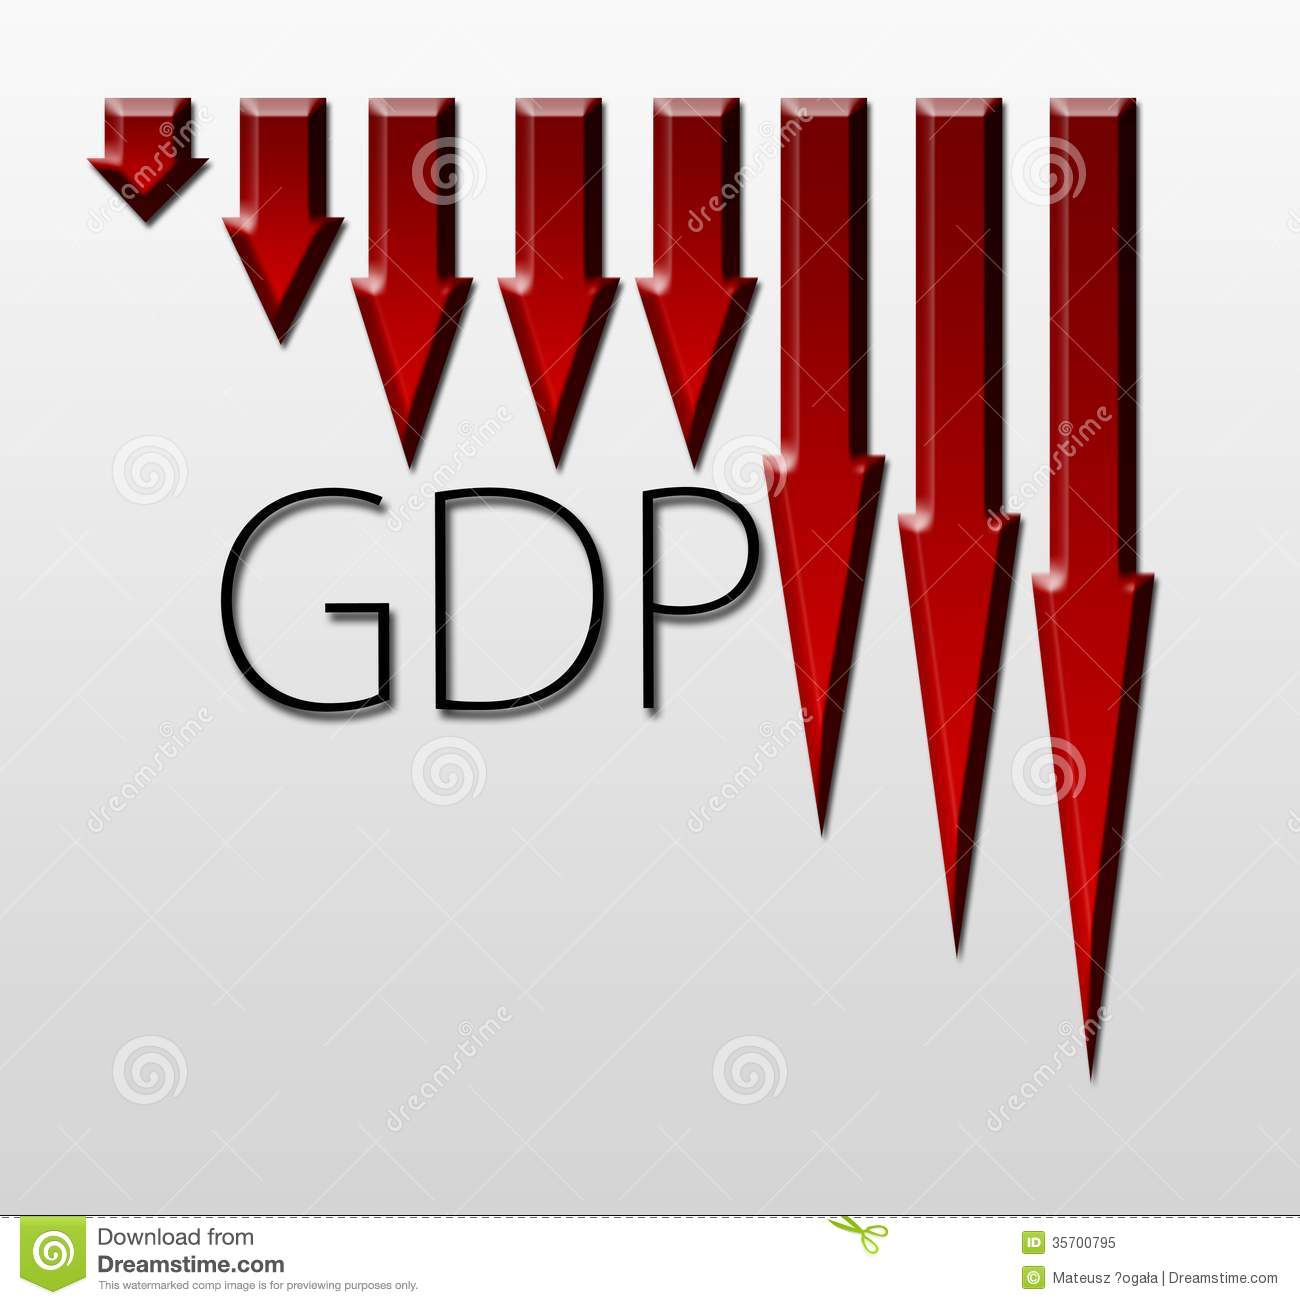 gdp gross domestic product week one macroeconomics Definition of gross domestic product (gdp): the value of a country's overall output of goods and services (typically during one fiscal year) at market prices, excluding net income from abroad gross domestic product (gdp) can be estimated in .